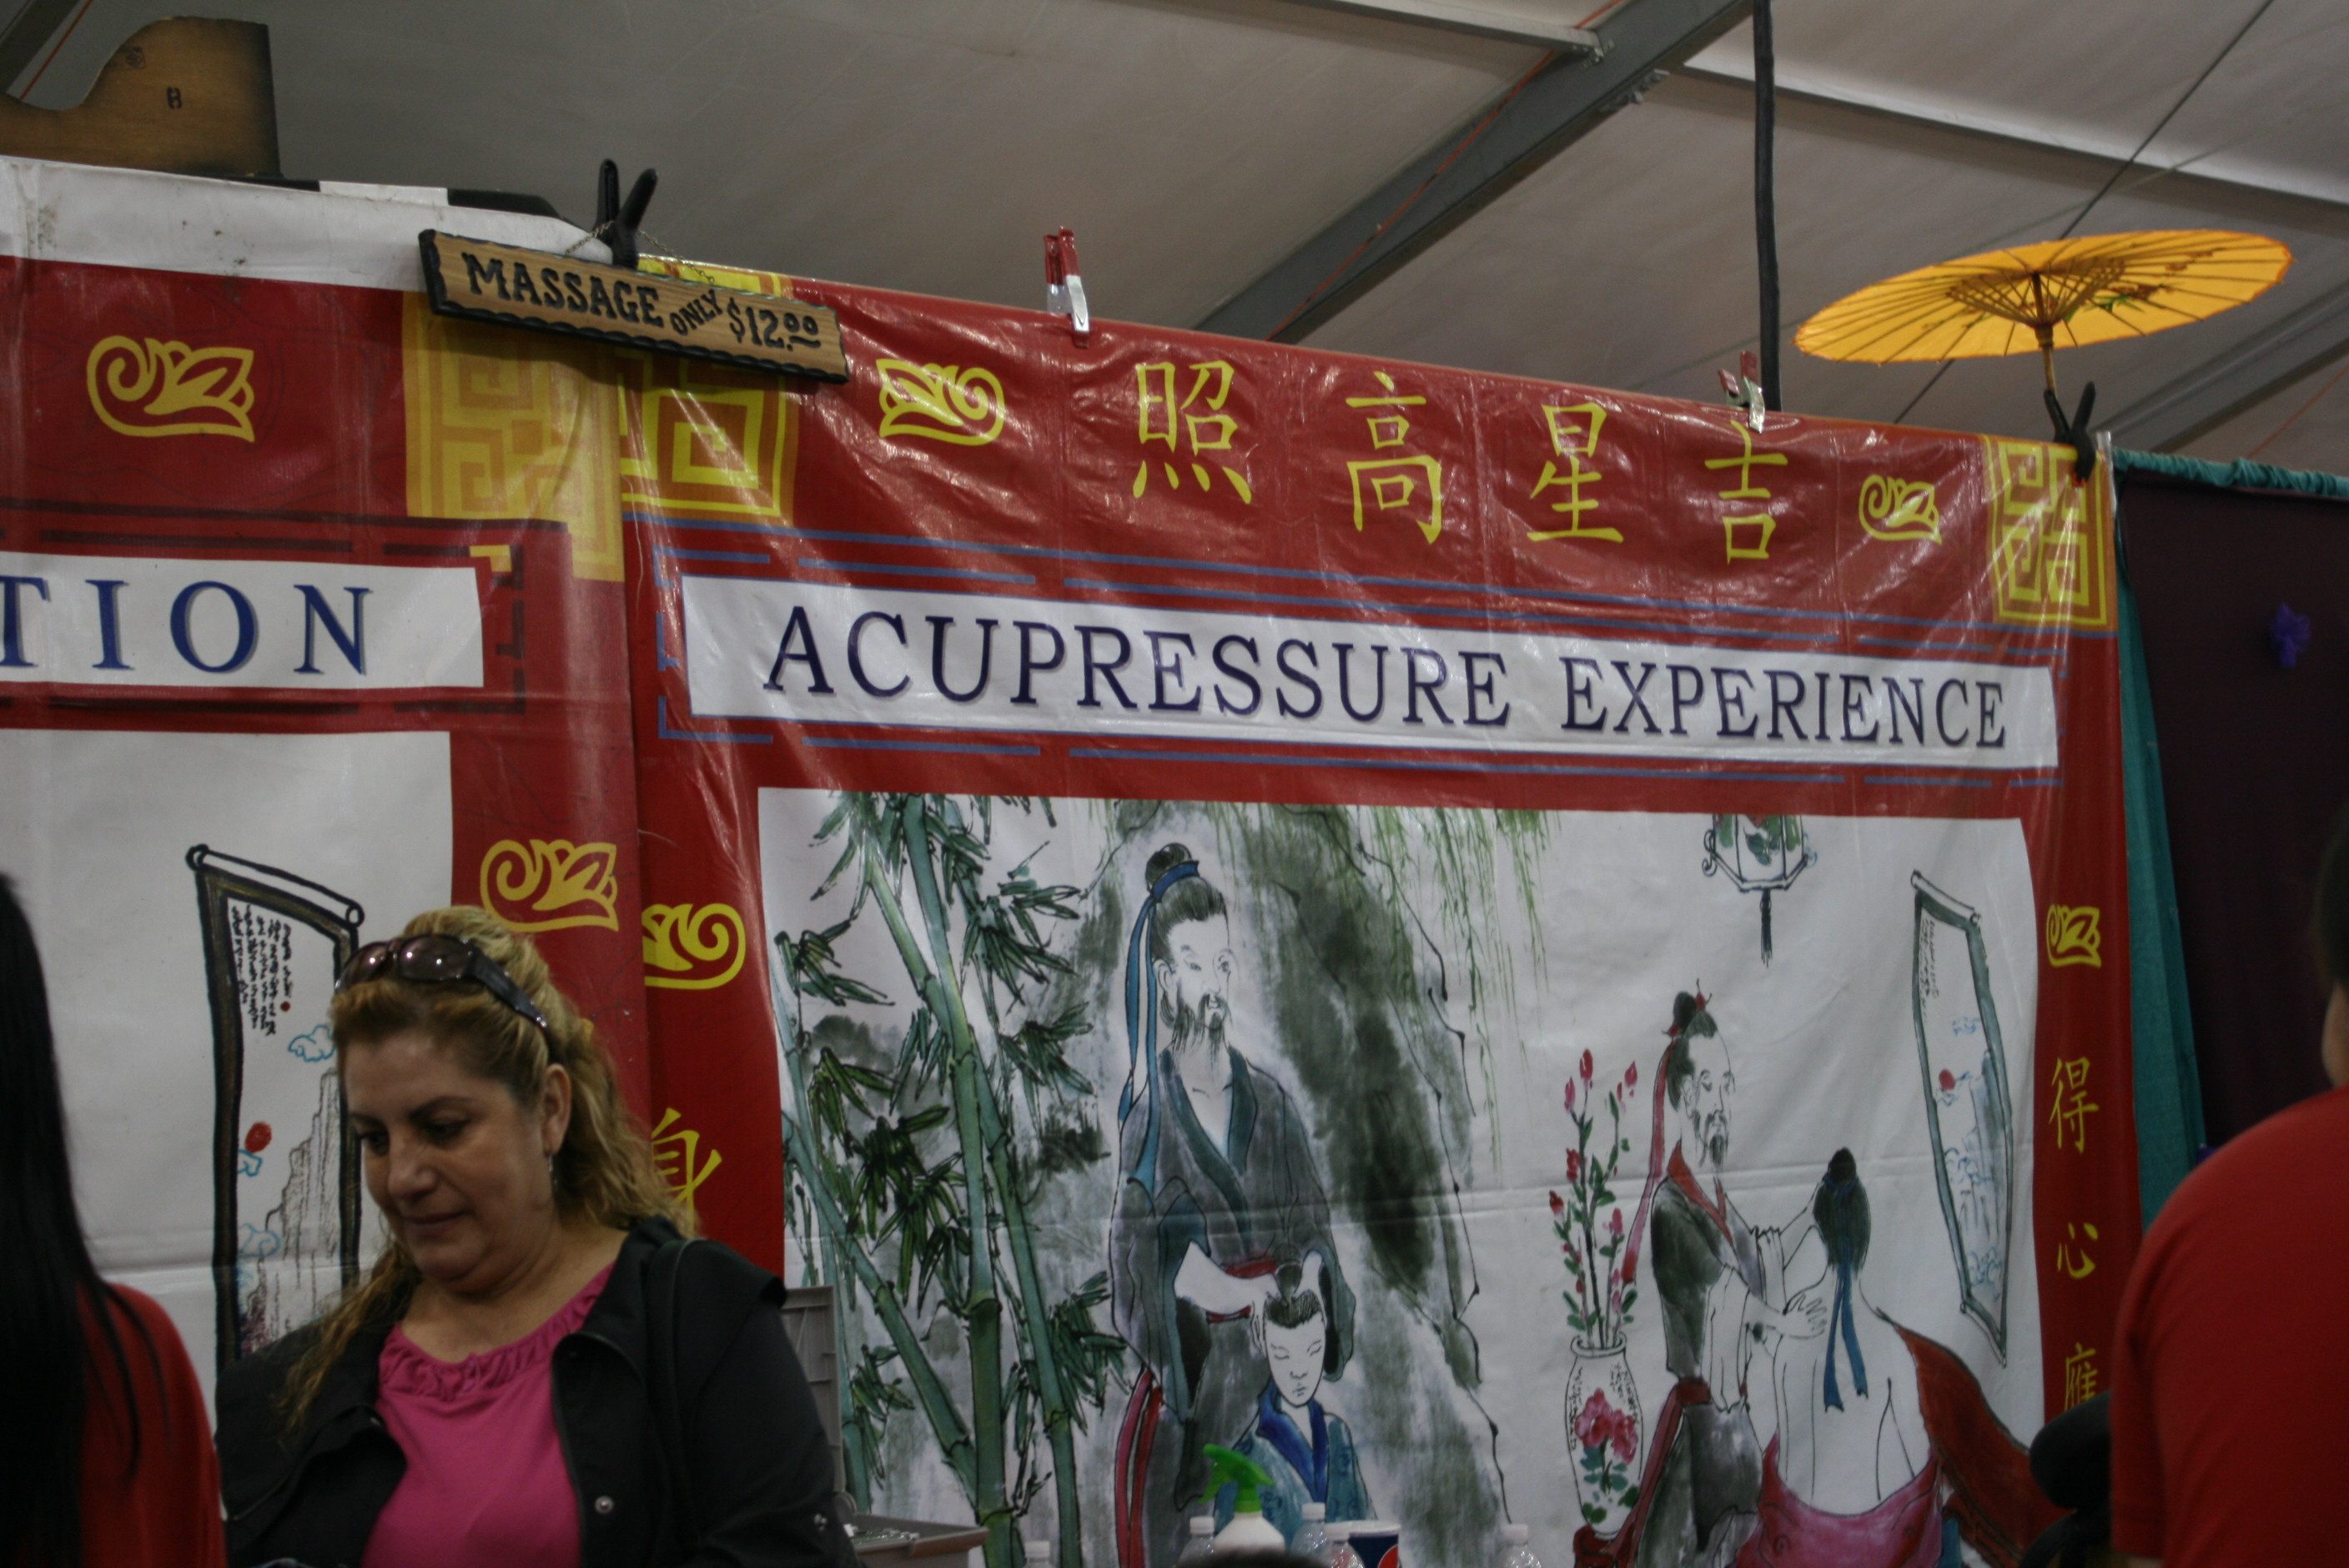 There is so much walking, you keep wanting to see everything, but now your feet are aching, Take A Break, get a relaxing massage treatment, right in the middle of the Fairgrounds!